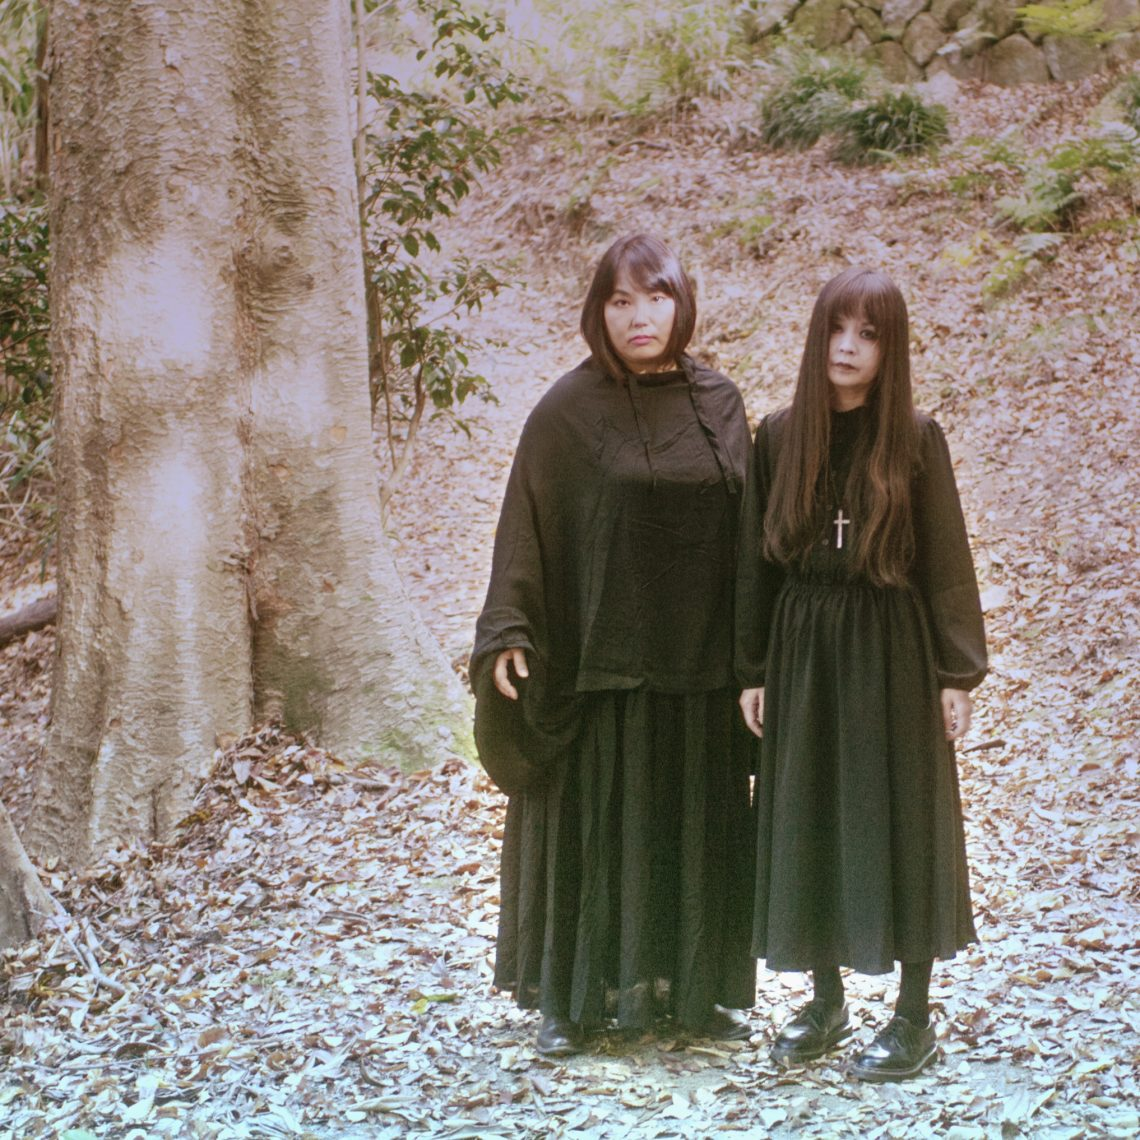 Japan's dark witch, doom duo BlackLab share lyric video for 'Weed Dream' / New album Abyss out now (New Heavy Sounds)